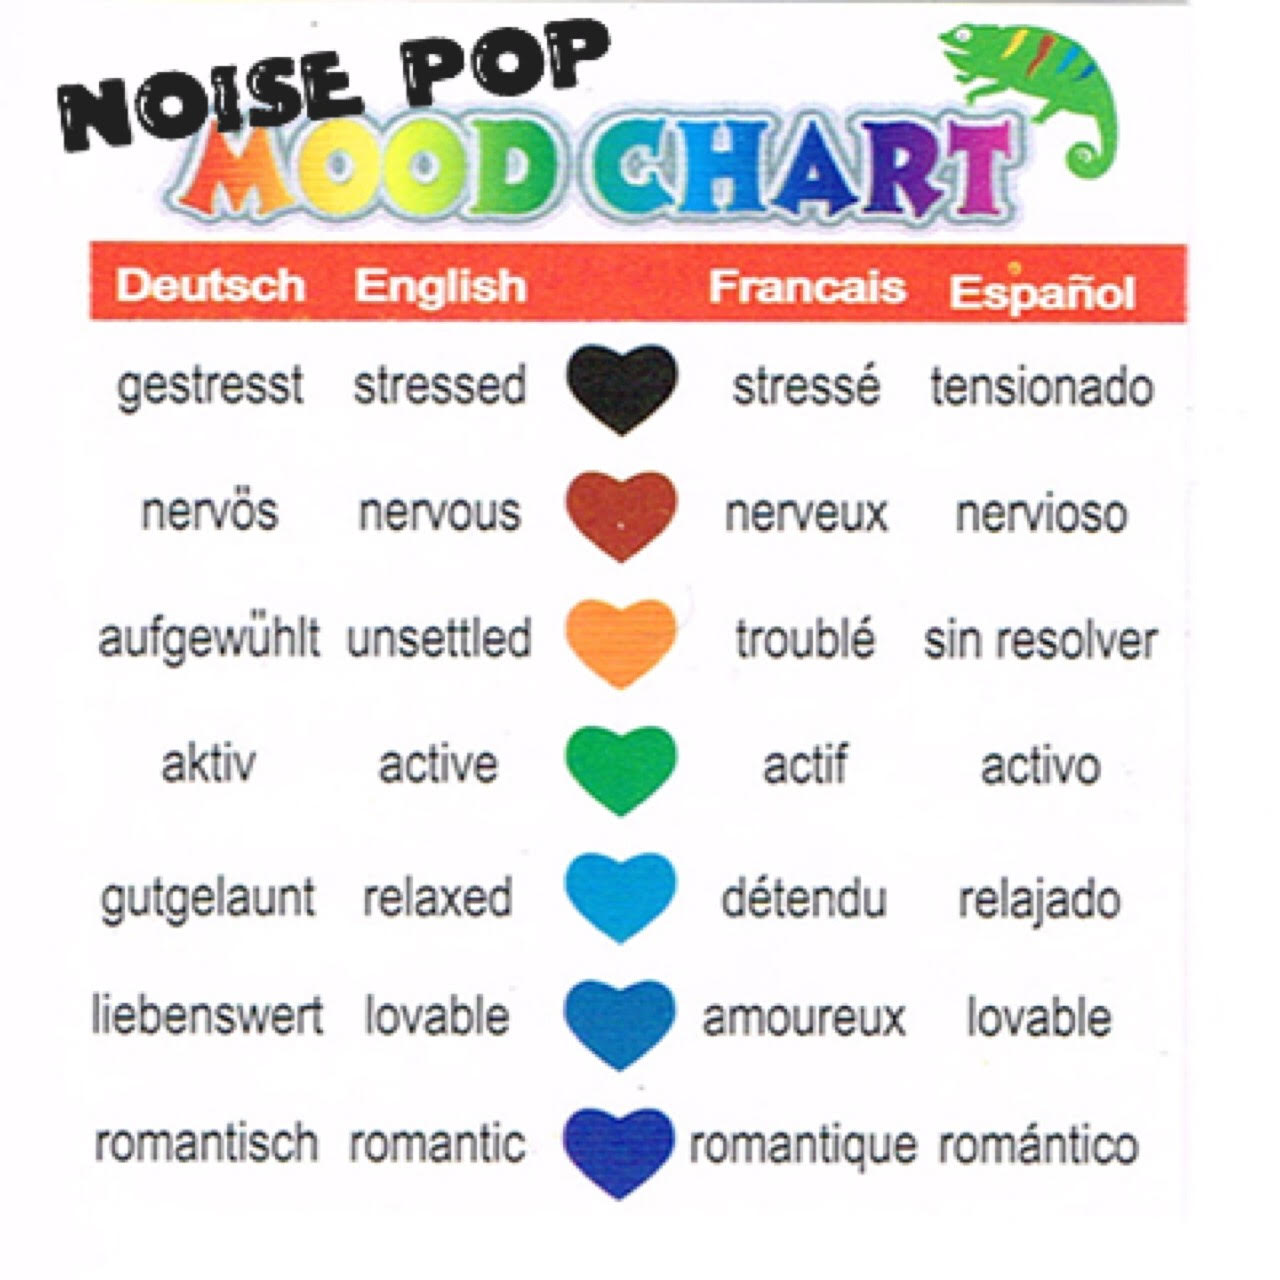 Your Noise Pop Mood Chart For